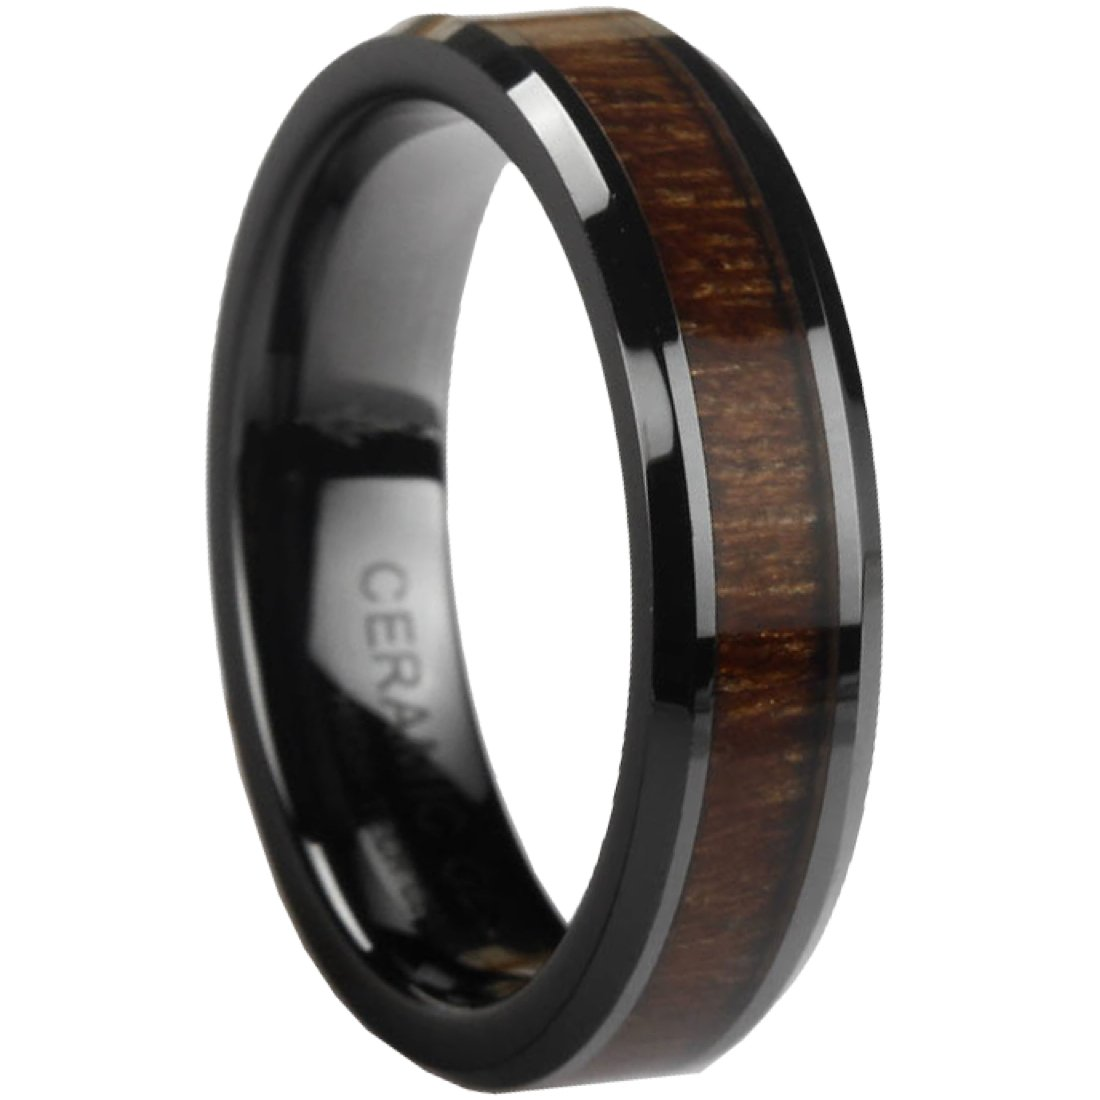 Black Ceramic Ring With KOA Wood Inlay by CERAMIC GESTALT - 6mm. Comfort Fit. RBL6KOA8